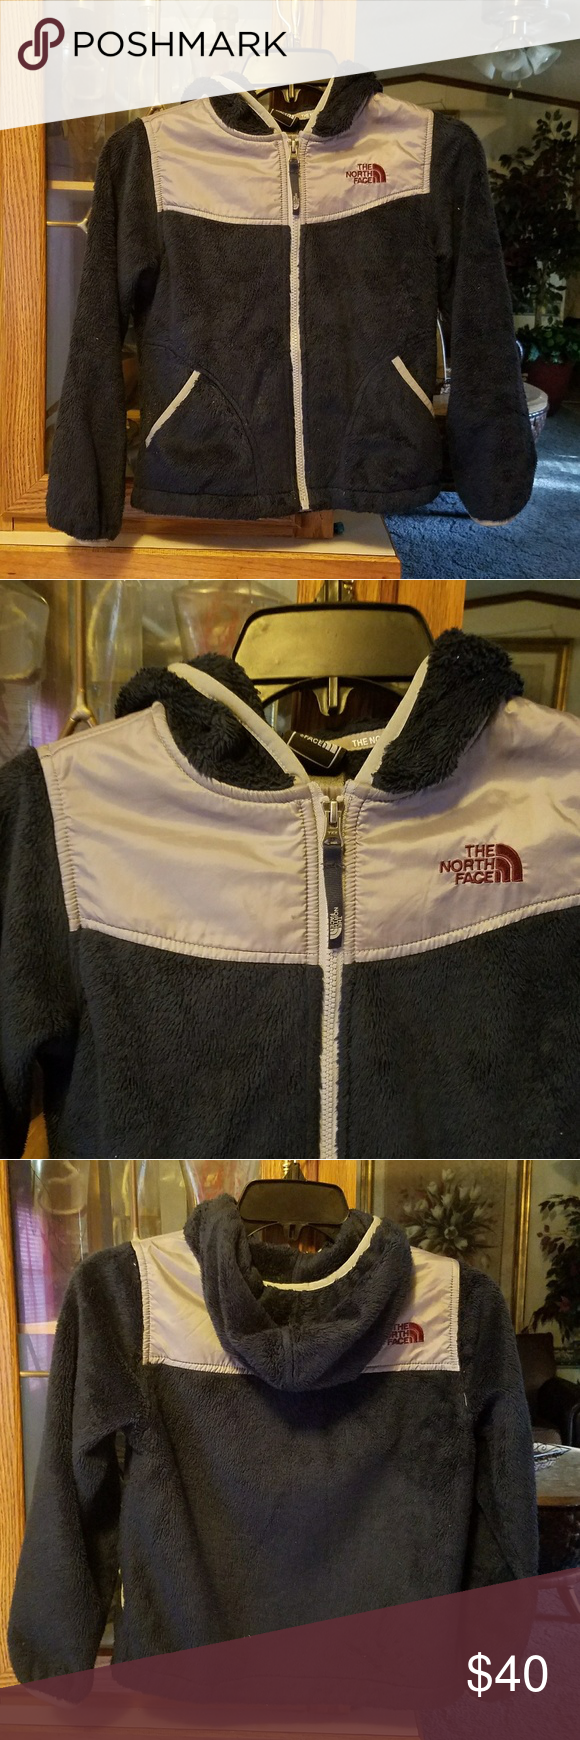 North Face Denali Boy's Blue & Gray North face Denali  With hood Good condition  Size S 7/8 North Face Jackets & Coats